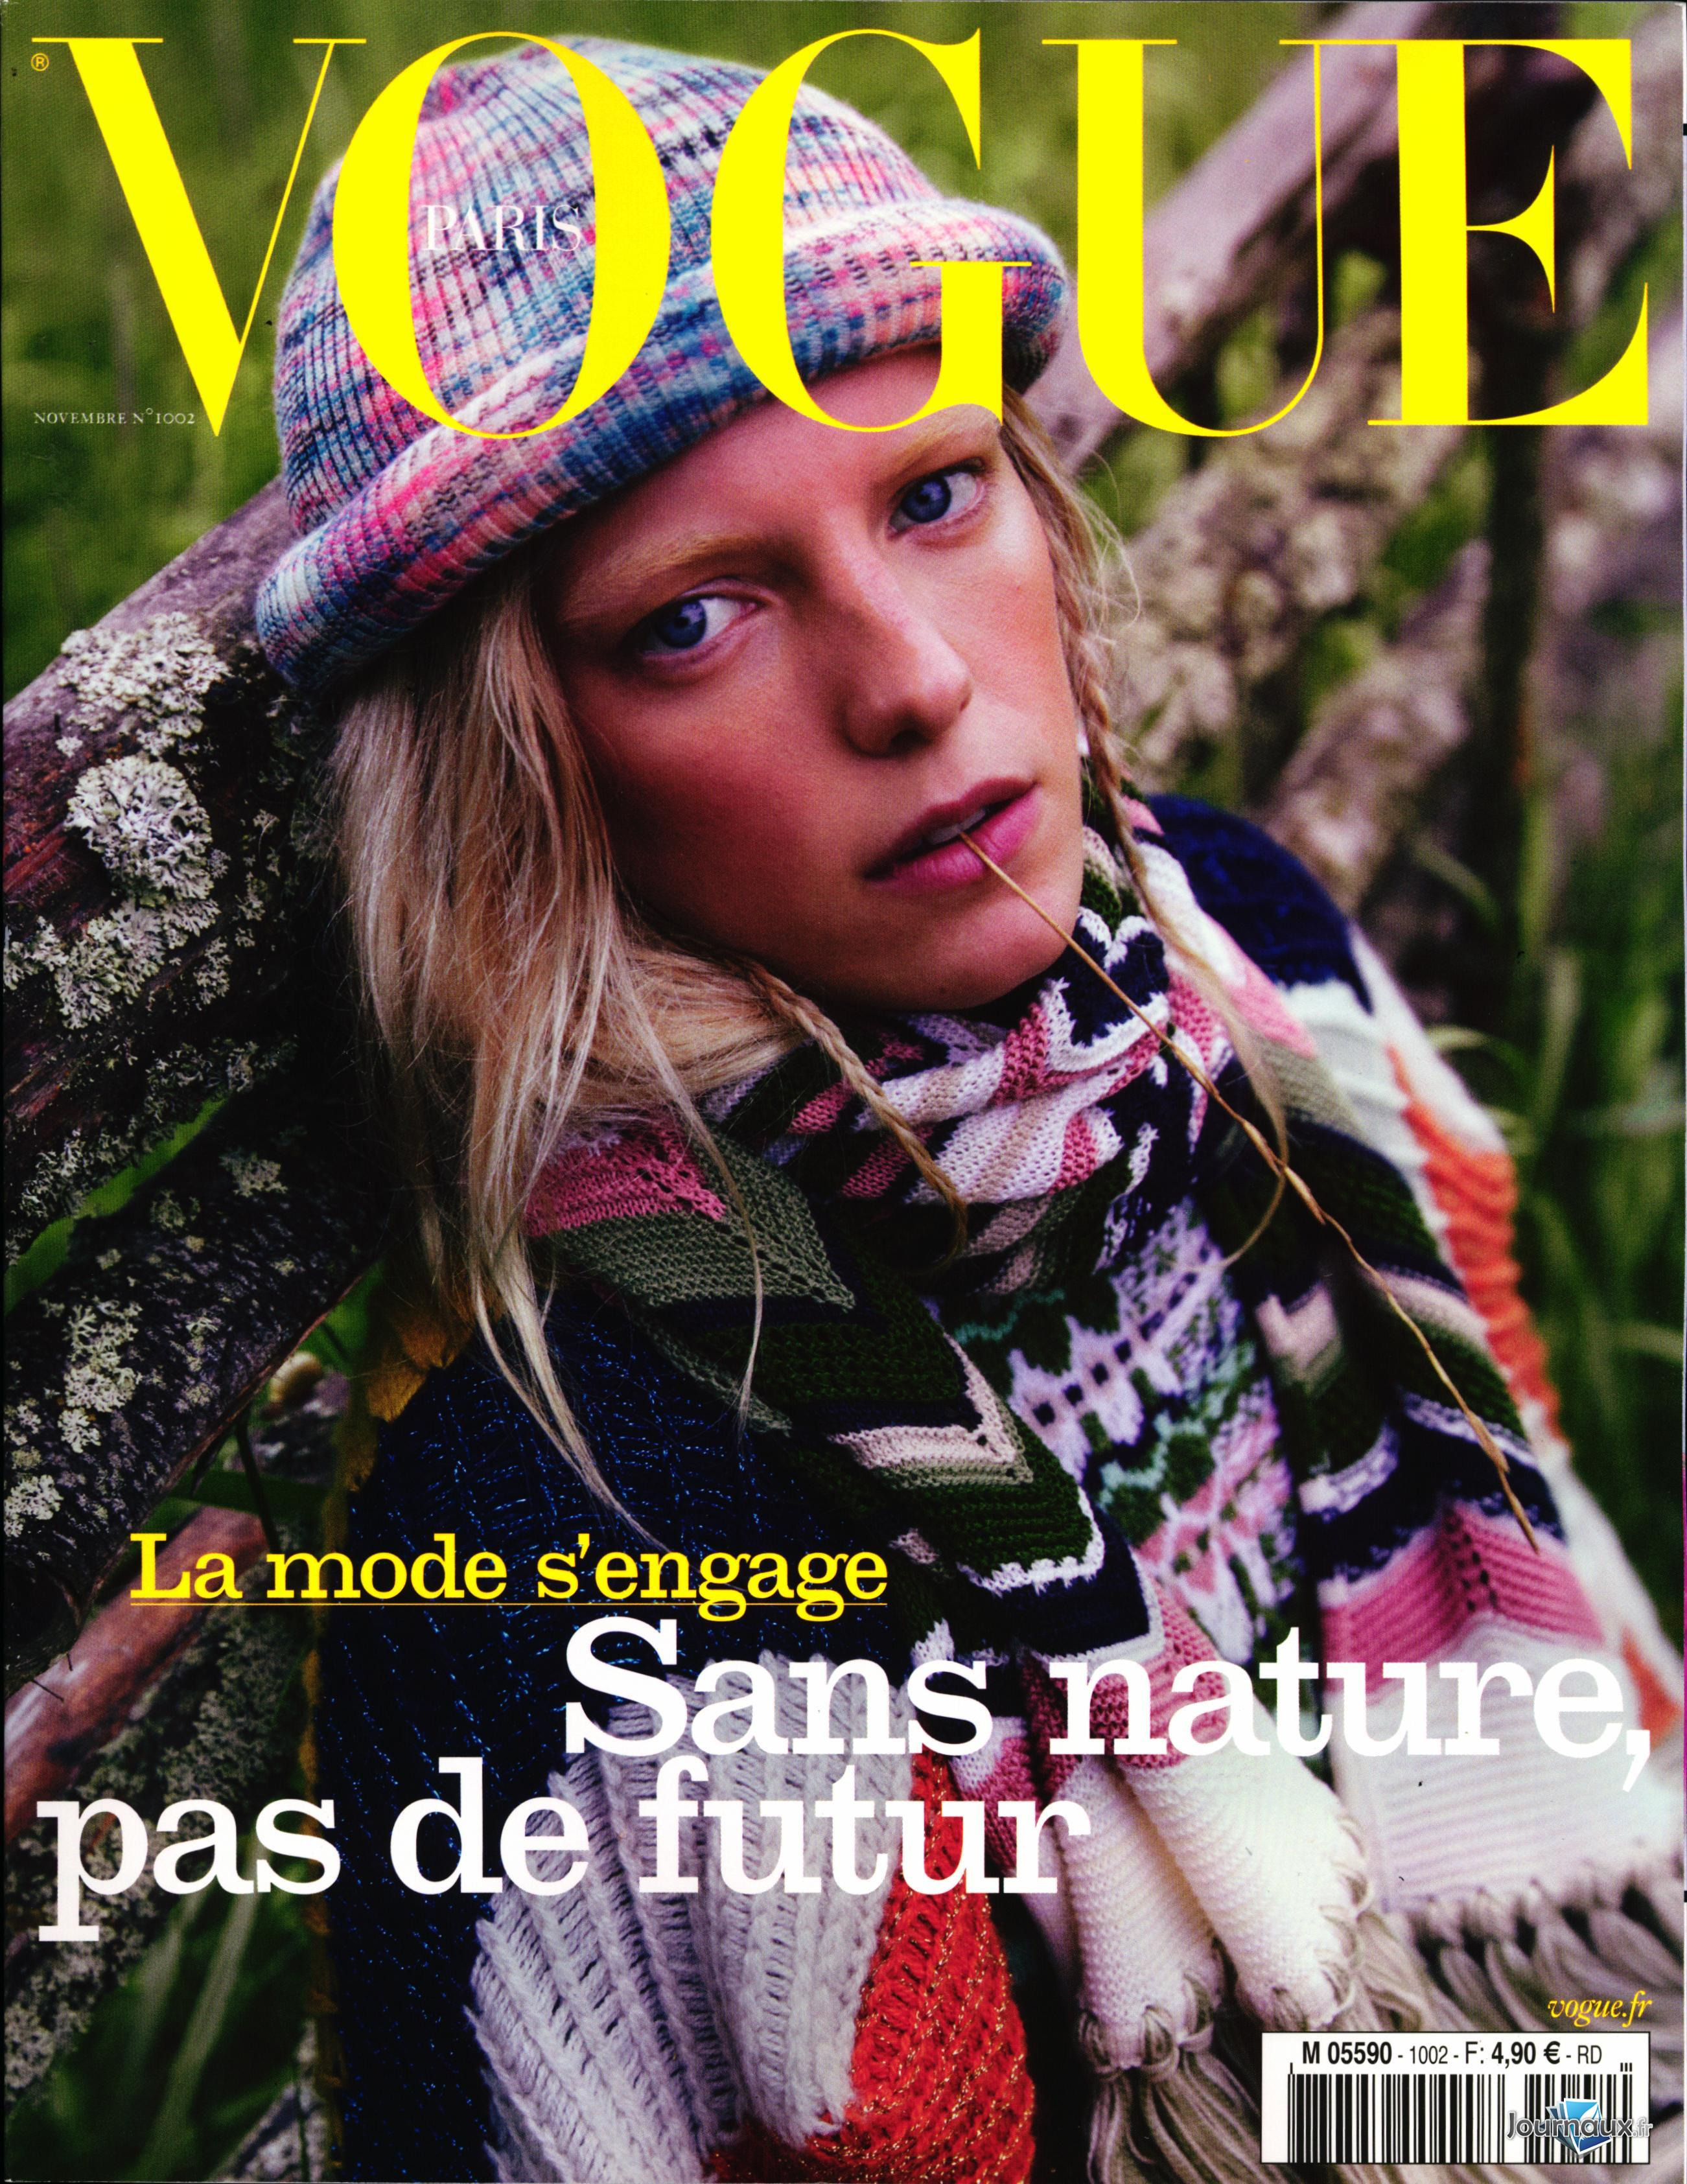 Vogue N° 1002 Octobre 2019